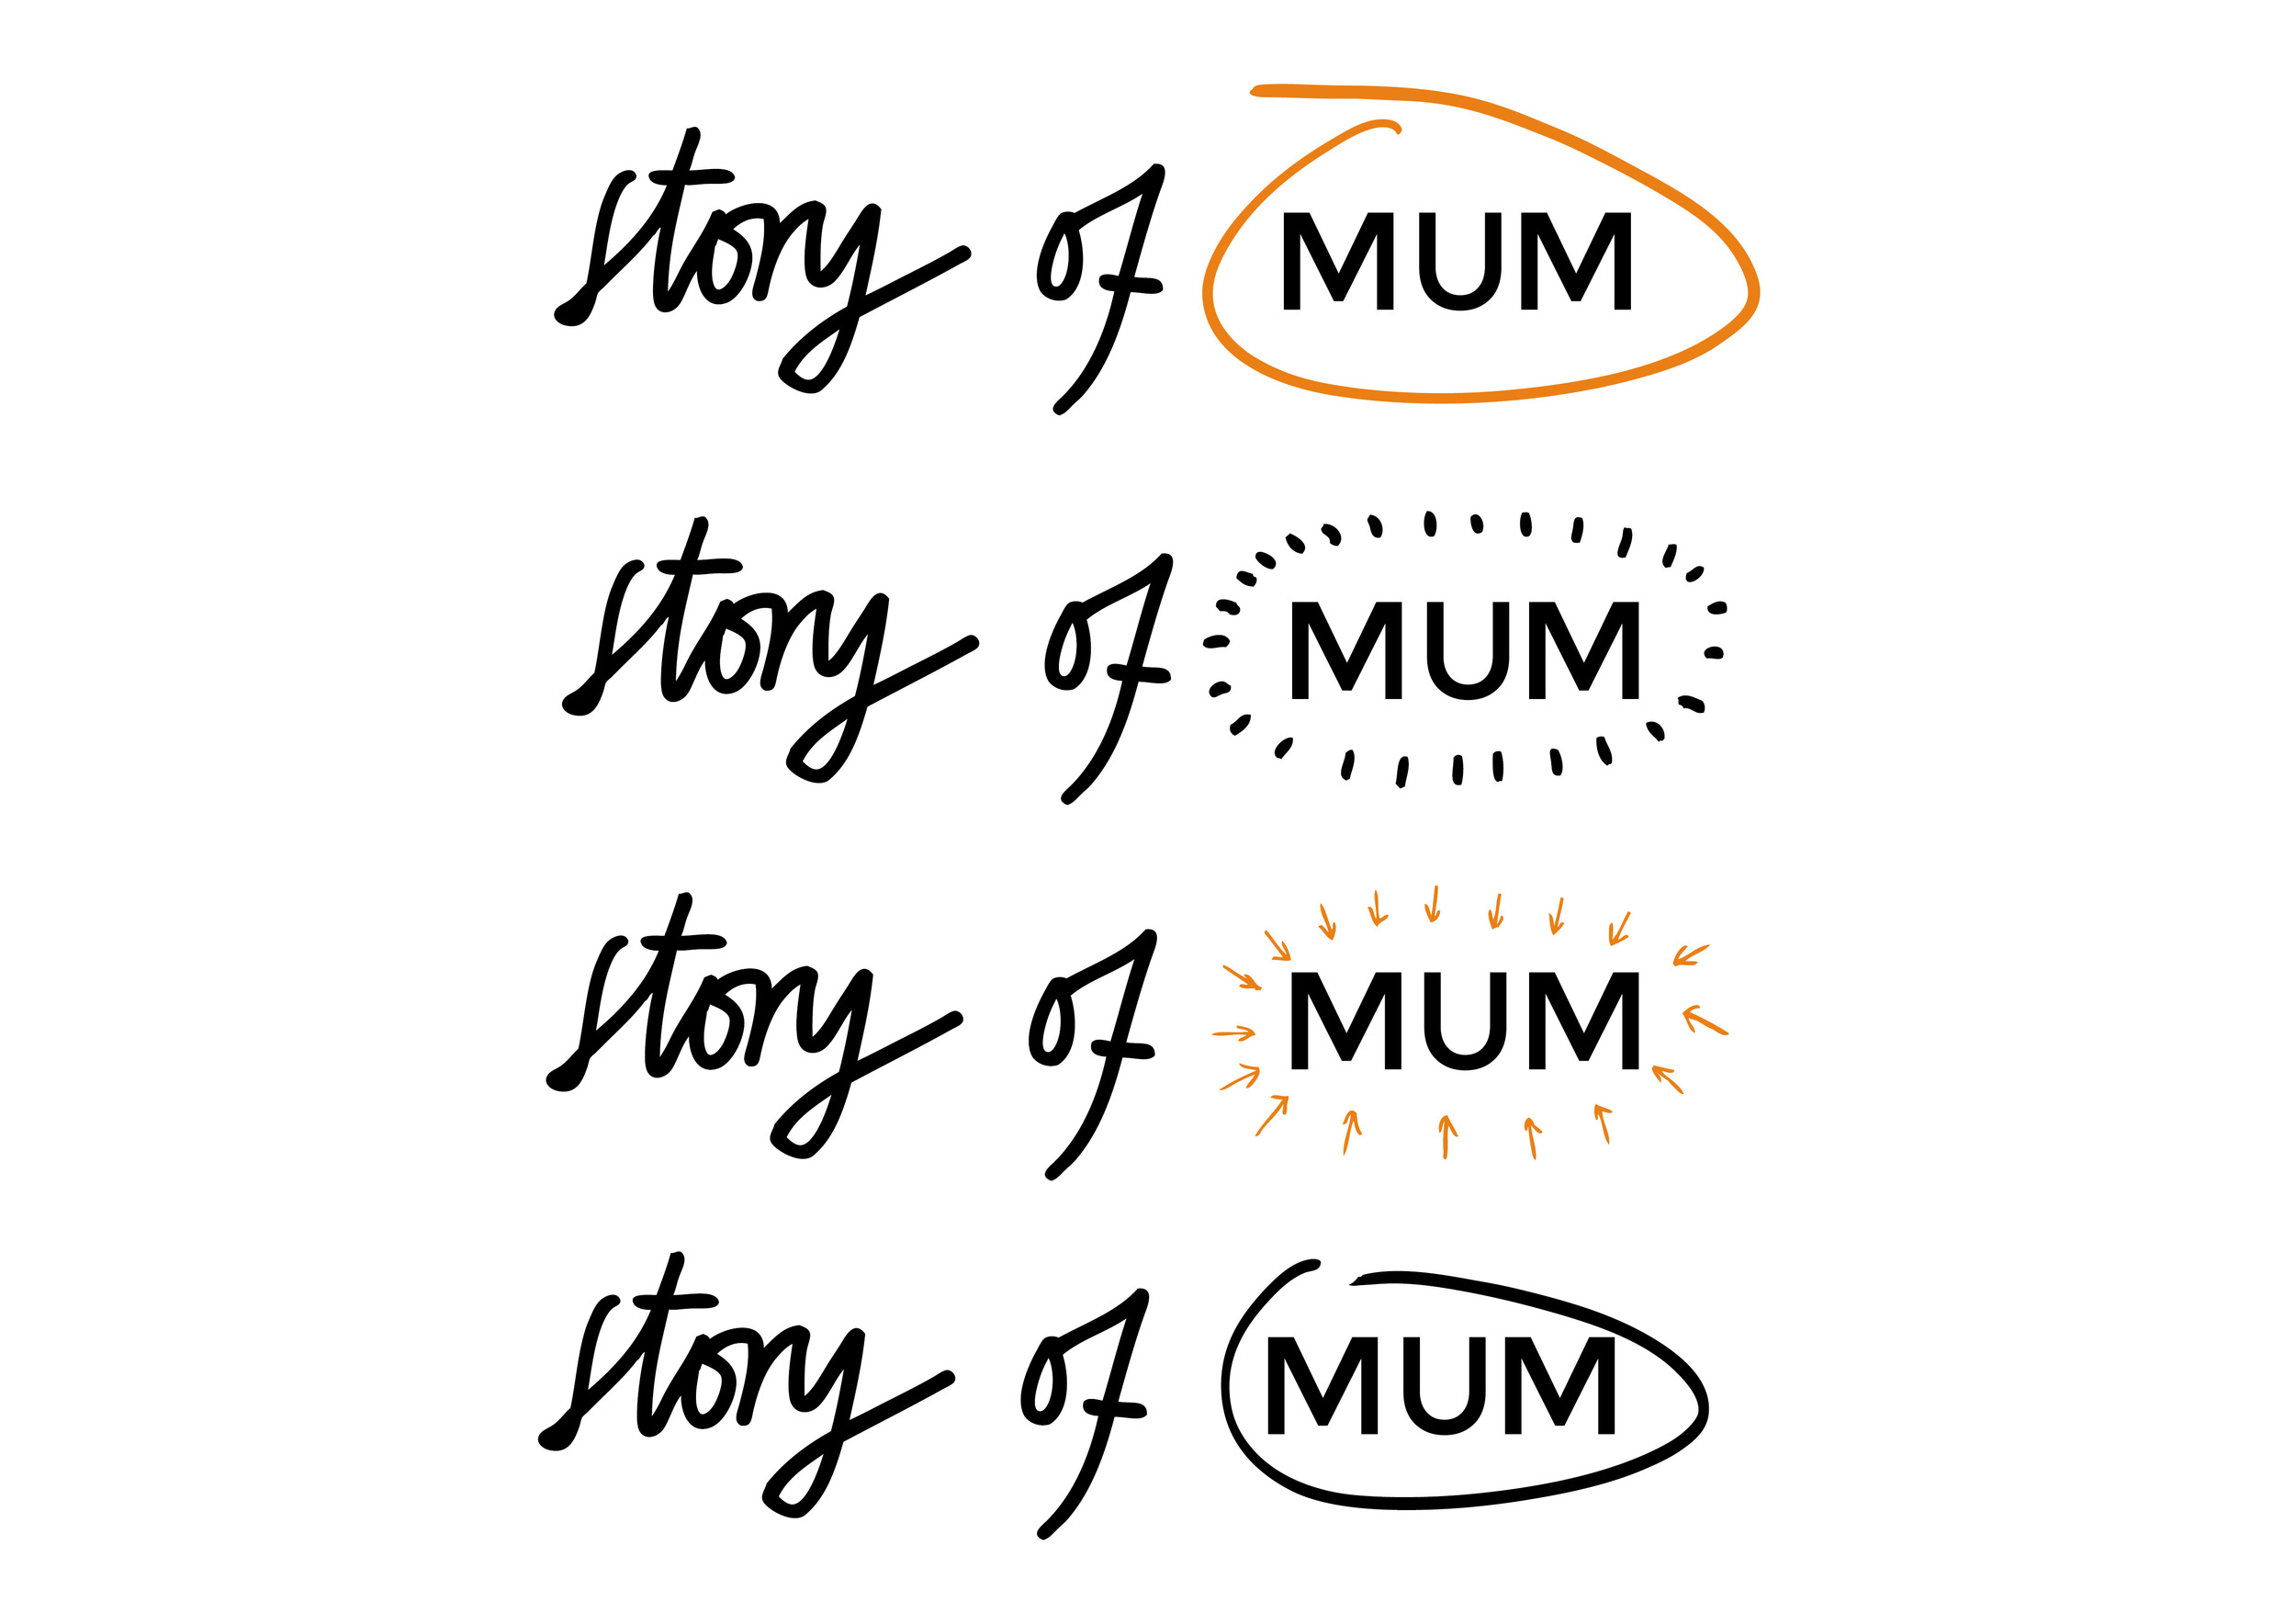 Identity for a Mums Network Web site  Placing emphasis on 'Mum' / 'me time'